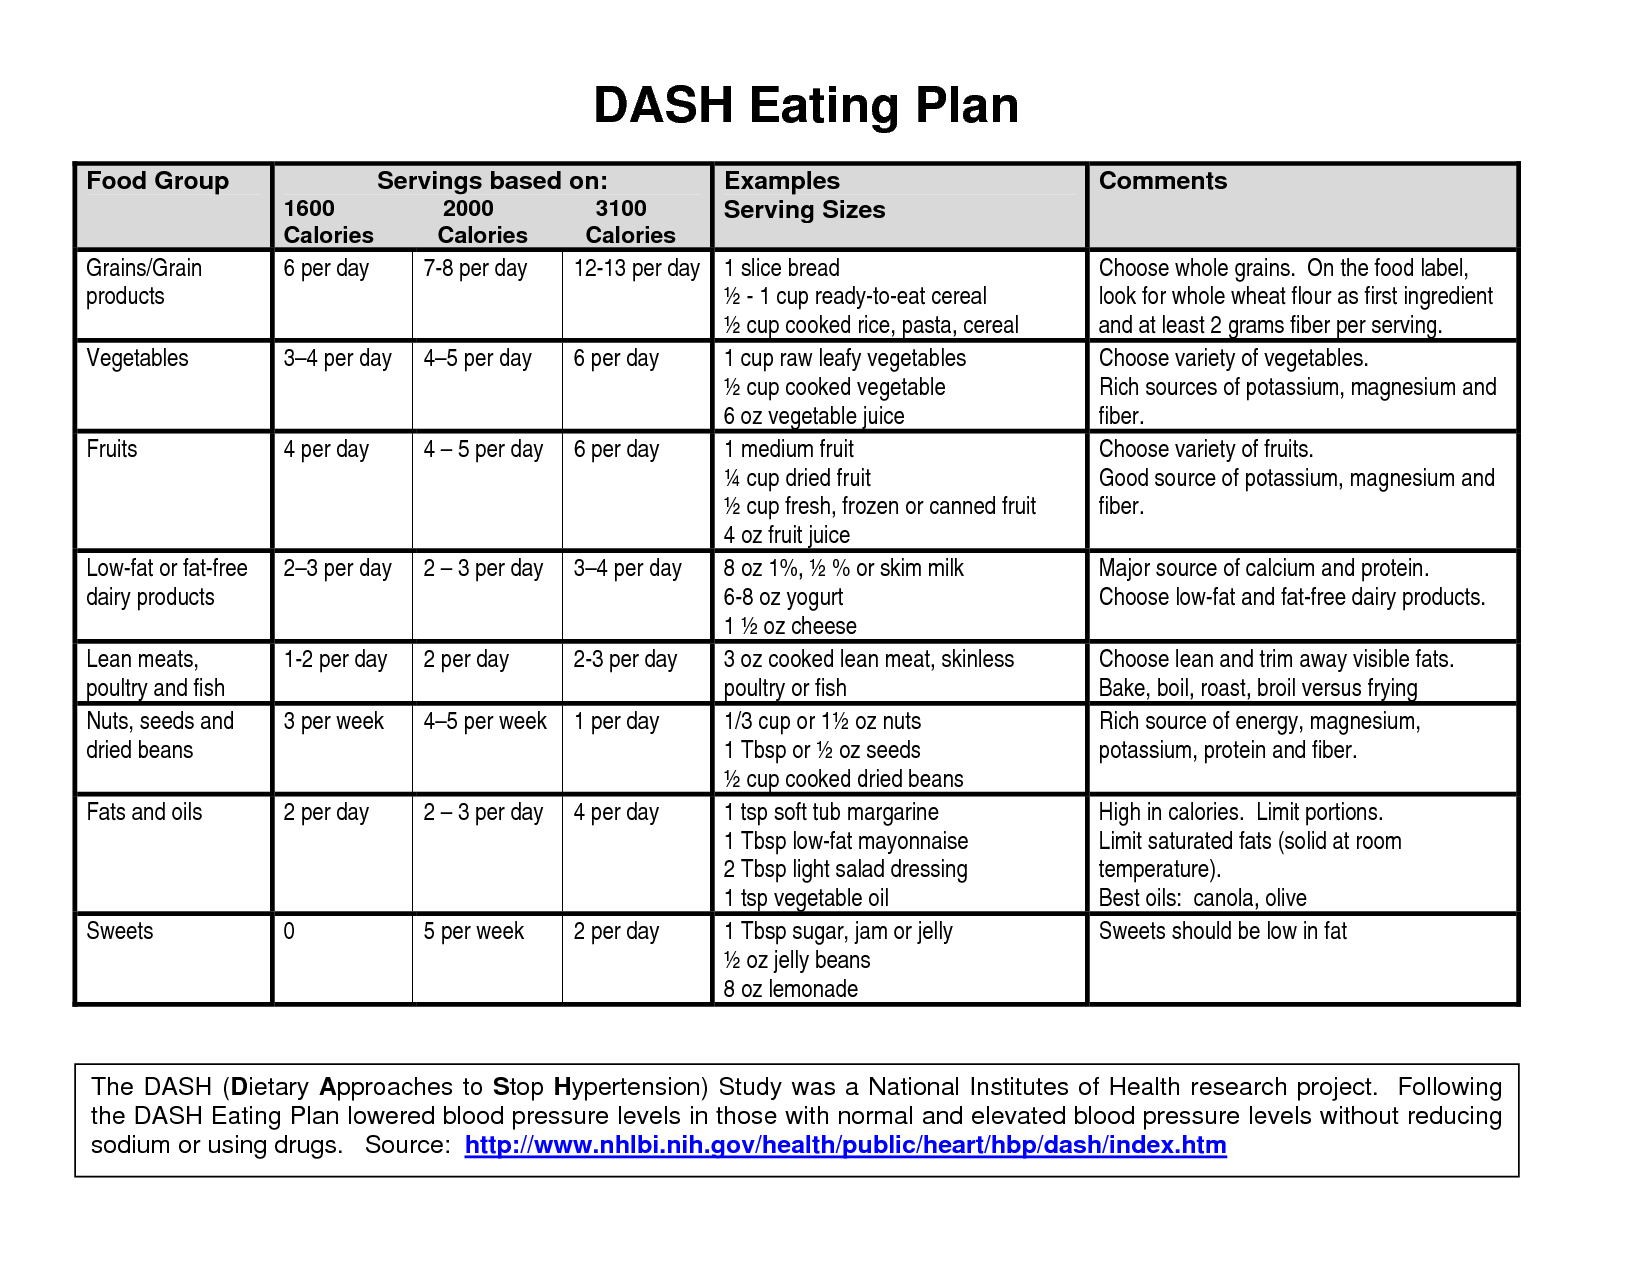 Dashdietmenueatingplan dash diet phase 1 pinterest dash dashdietmenueatingplan fandeluxe Gallery